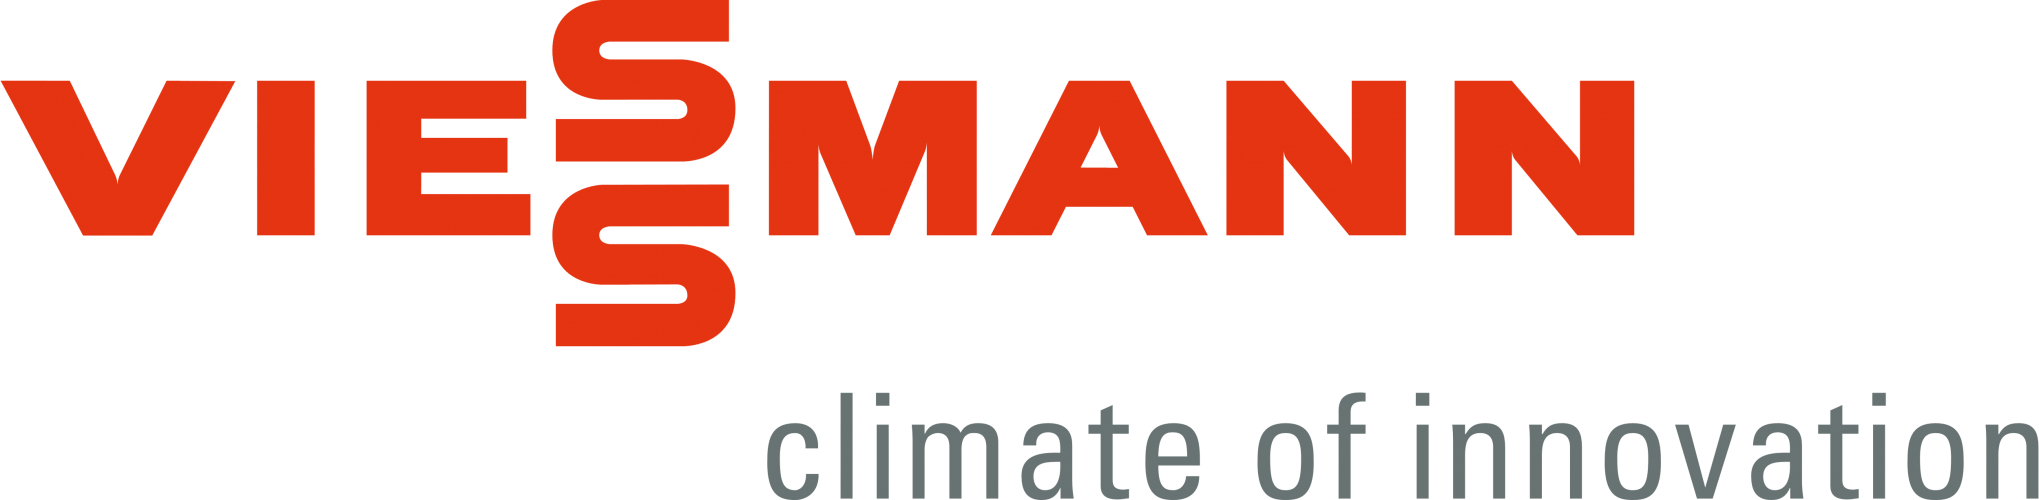 Viessman_logo_slogan_climate_of_innovation